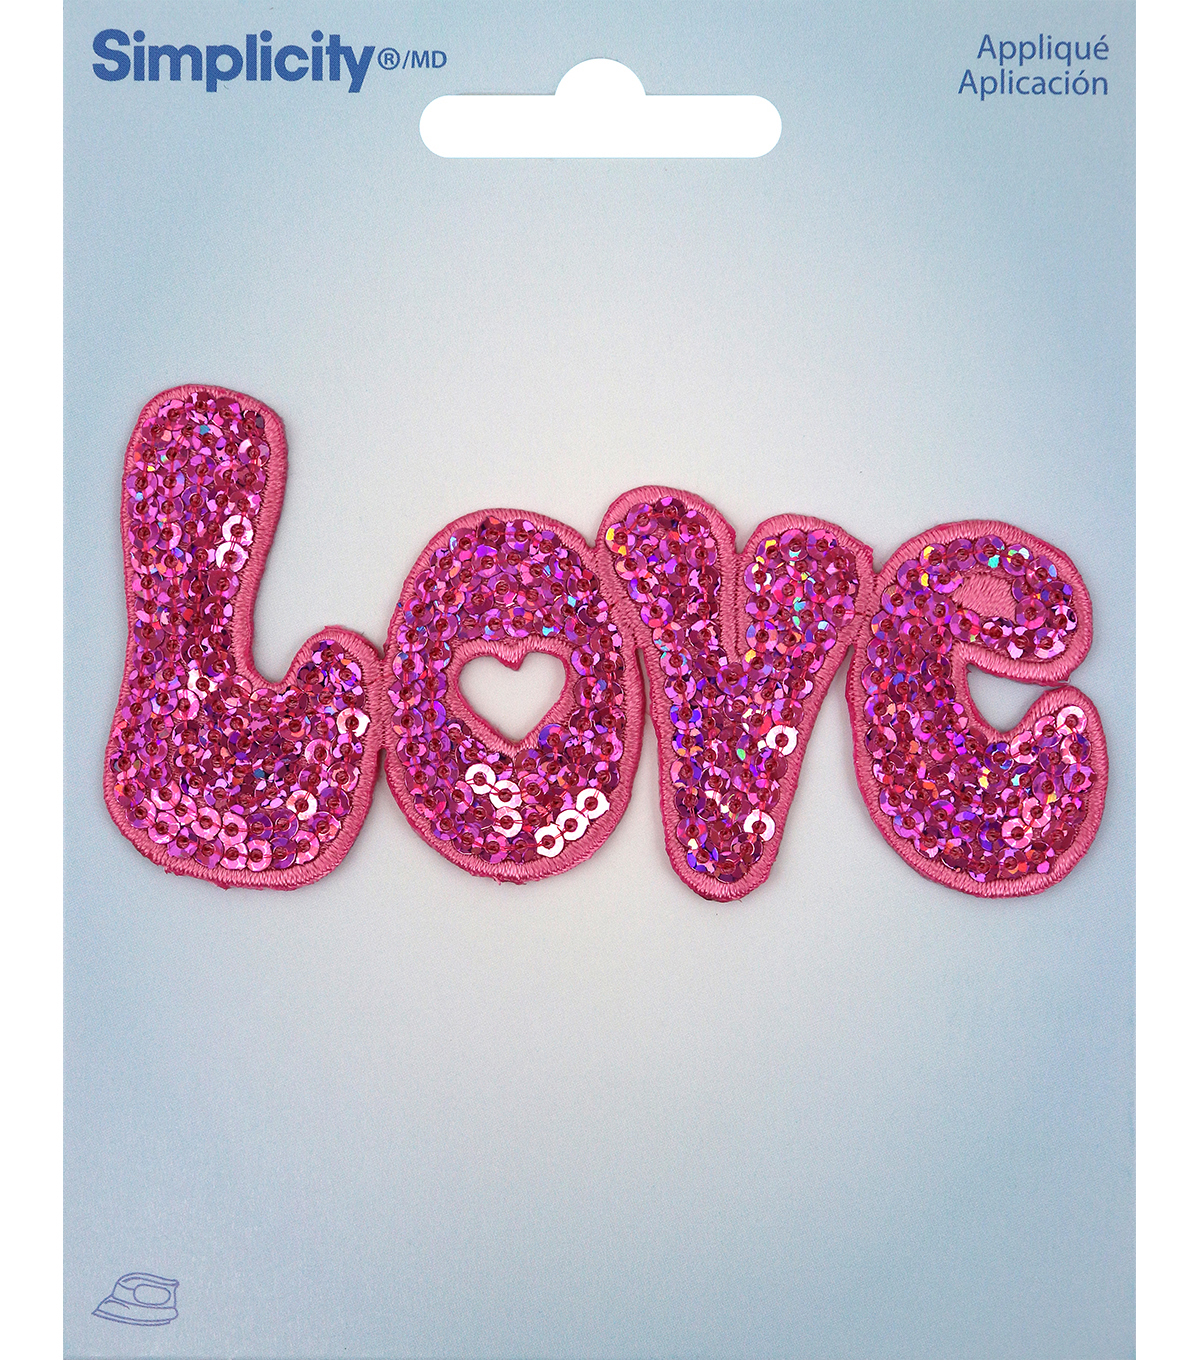 Simplicity Love Iron-on Applique with Sequins-Pink